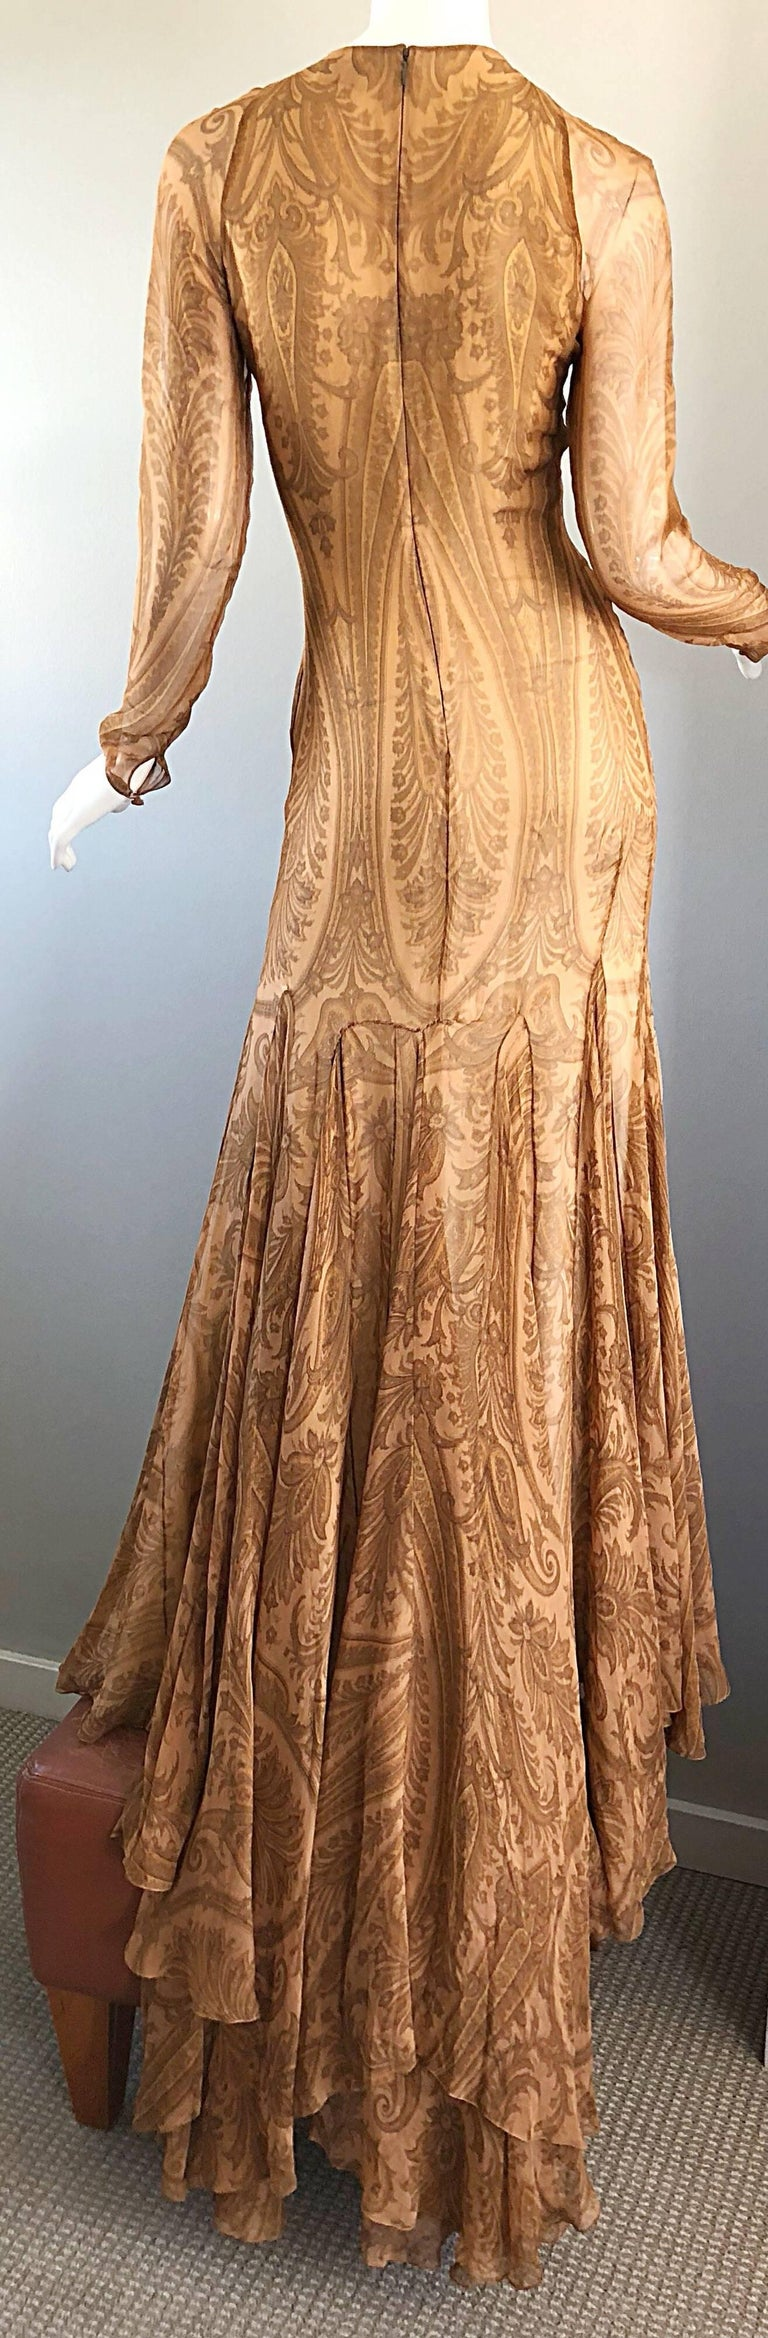 Sensational 1990s Bill Blass Couture Nude Silk Chiffon Paisley Vintage 90s Gown  For Sale 11